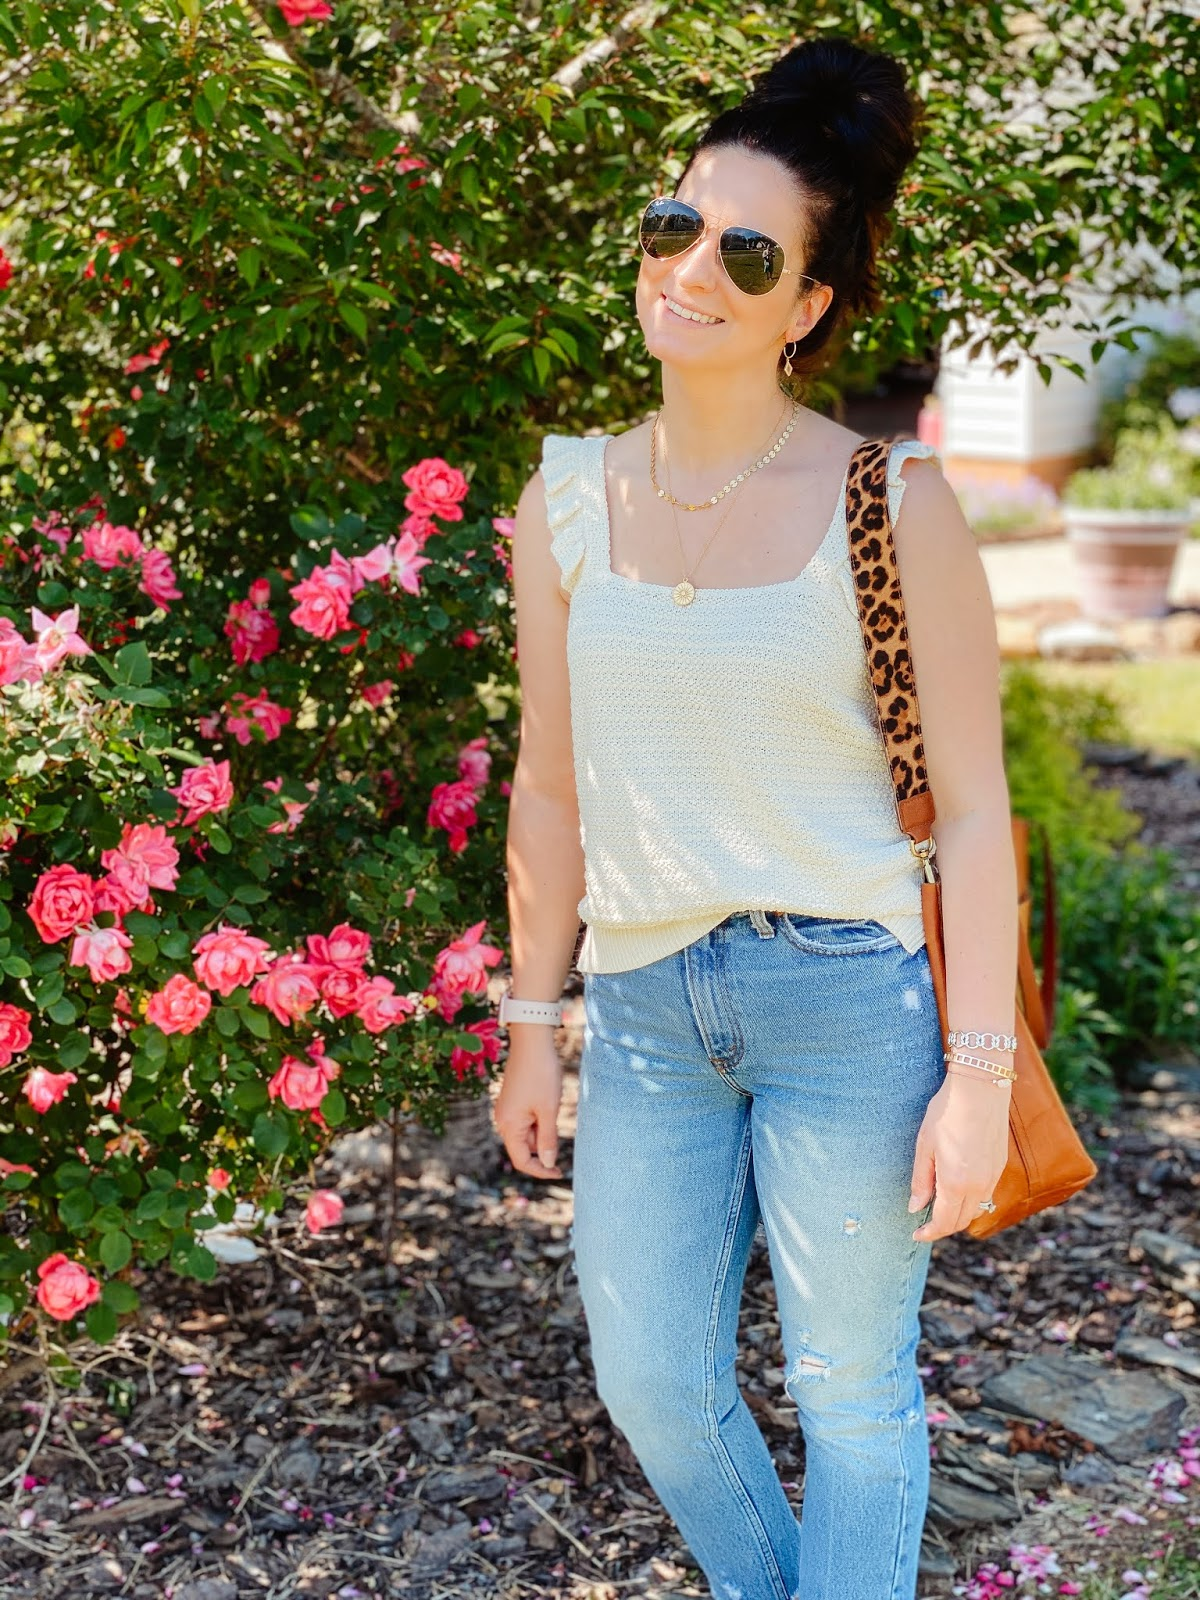 instagram roundup, nc blogger, north carolina blogger, spring style, spring outfit ideas, style on a budget